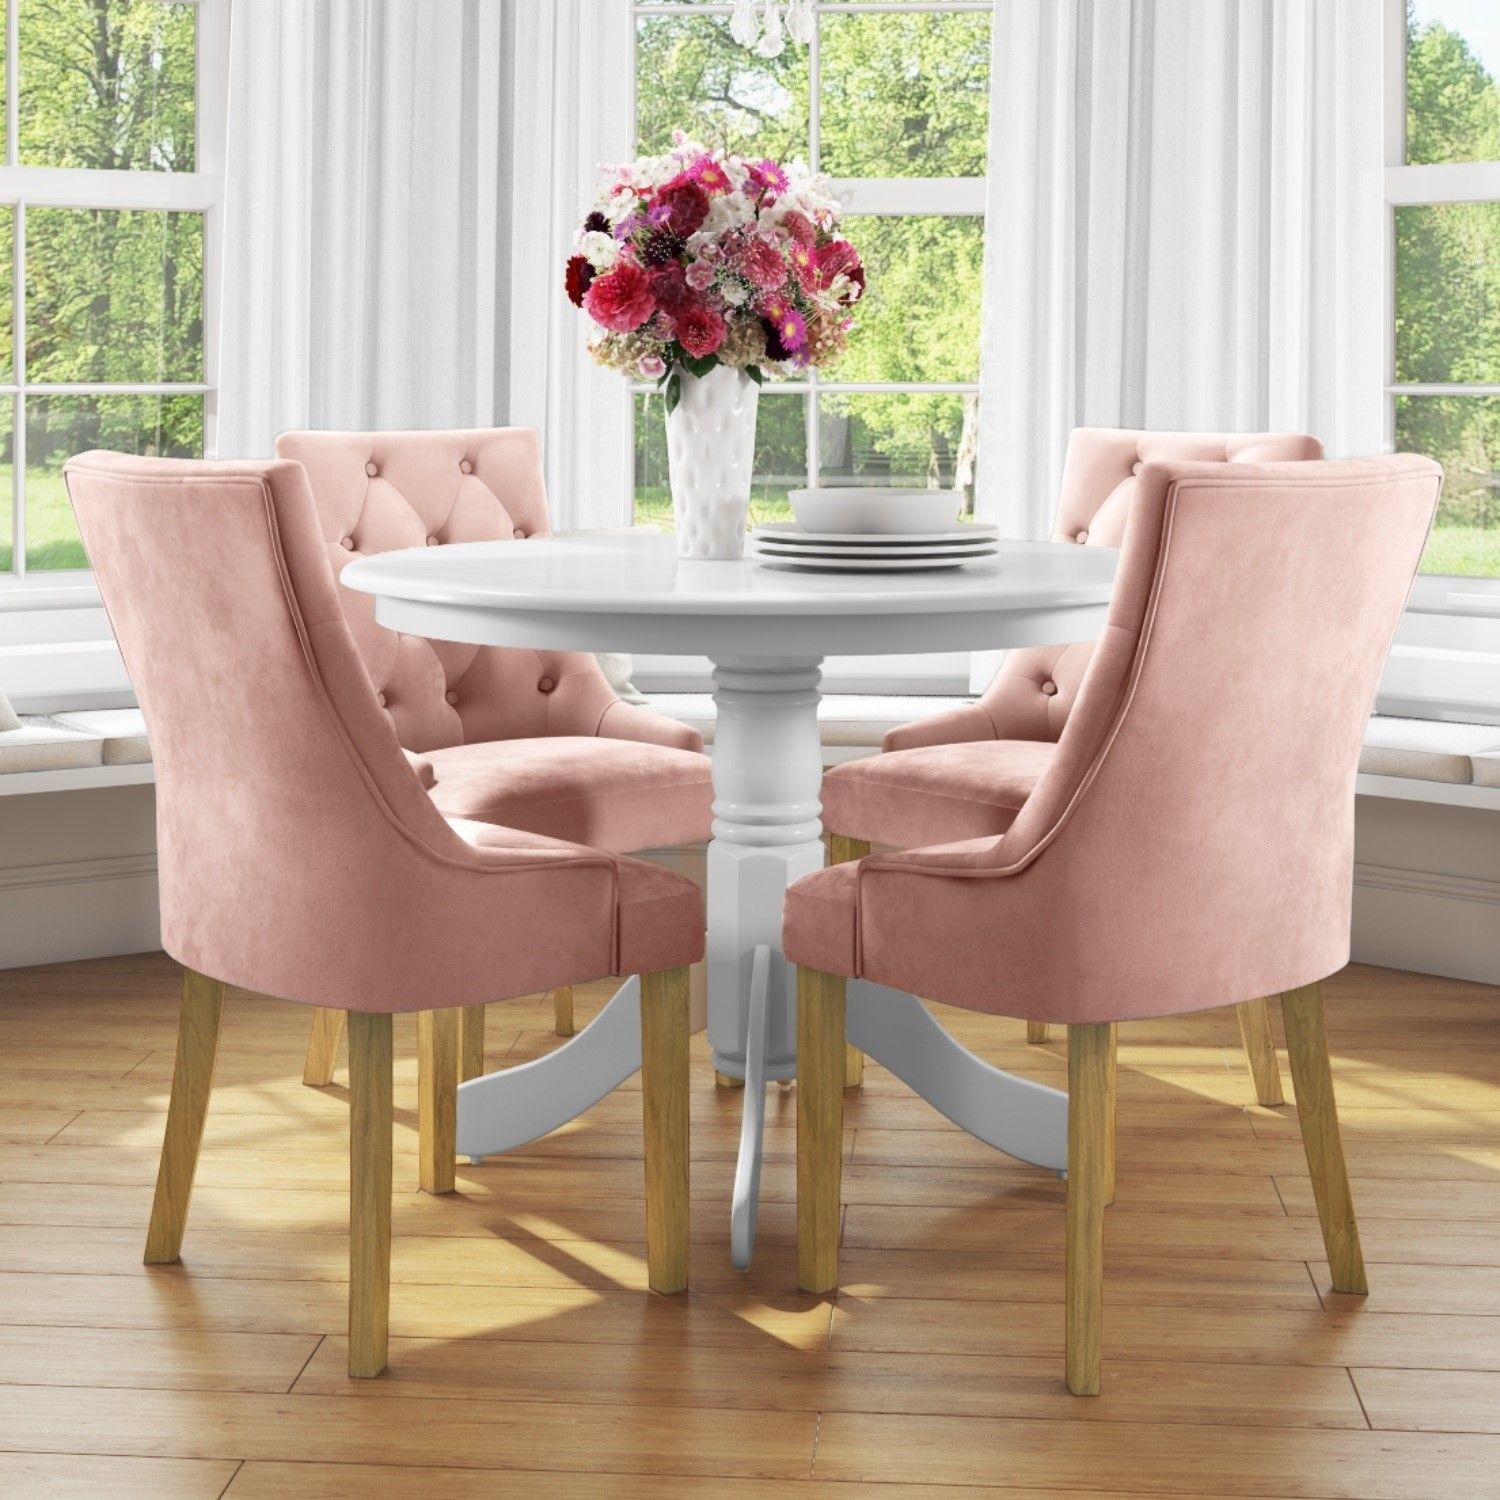 Small Round Dining Table In White With 4 Velvet Chairs In Pink Rhode Island Kaylee Buyitdirect Ie